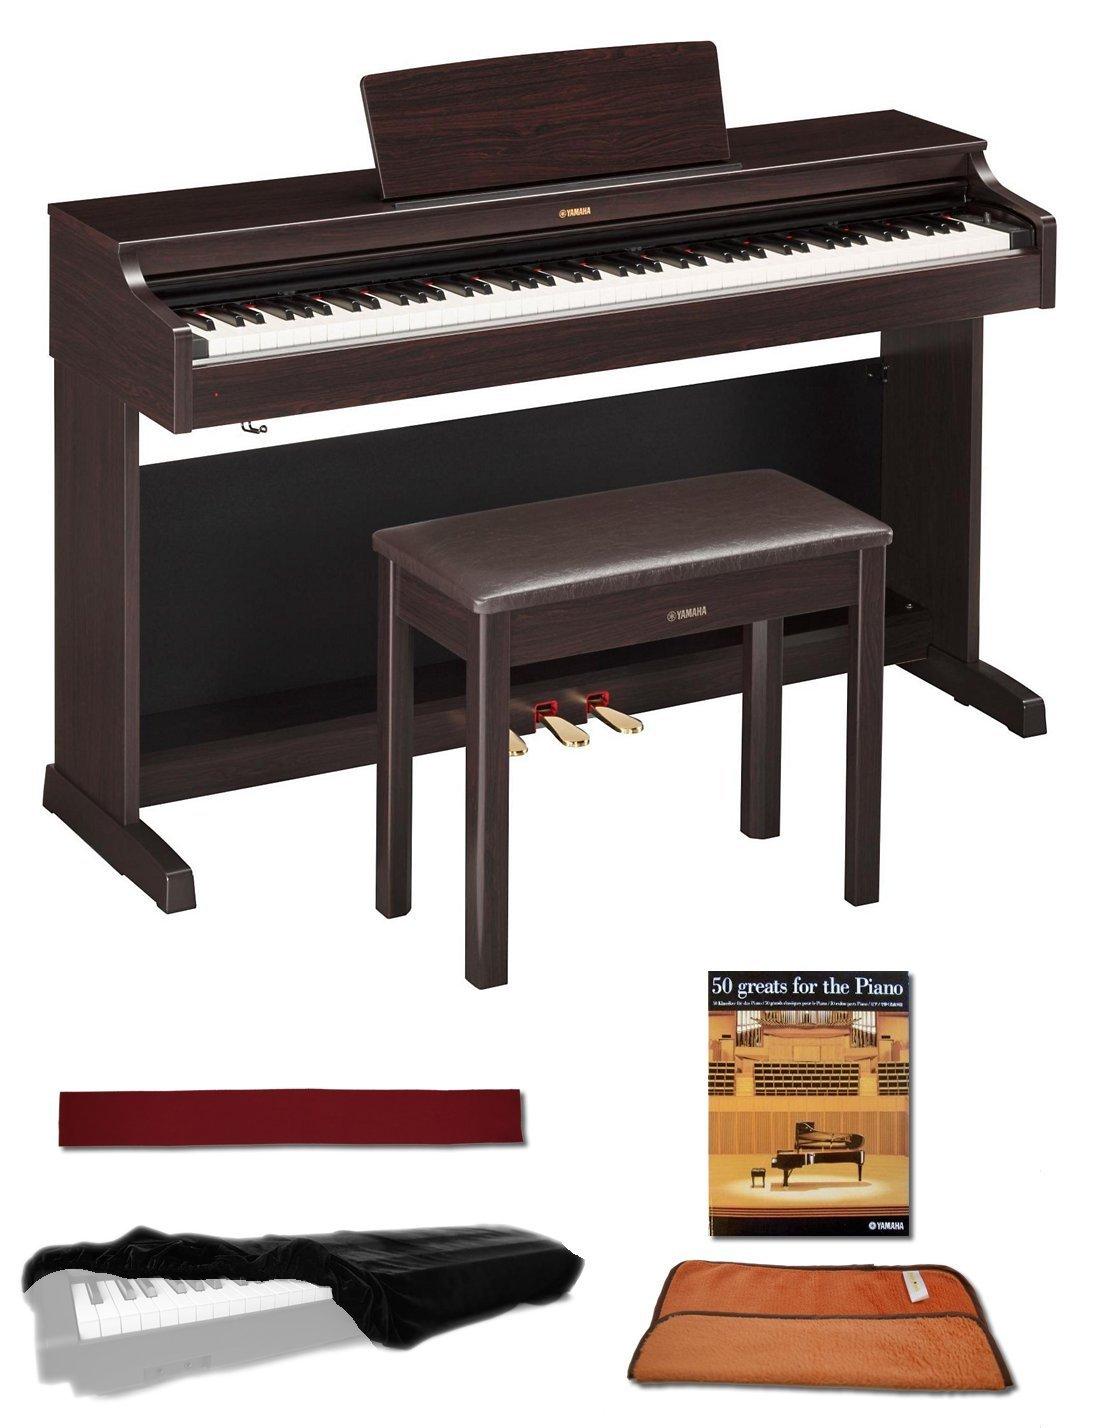 Yamaha YDP143R Rosewood 88 Weighted Keys Digital Piano keyboard Bundle with Matching Bench, Juliet Music Piano Dust Cover, Key Cover, Polish Cloth and Manuscript Book JMYDP143